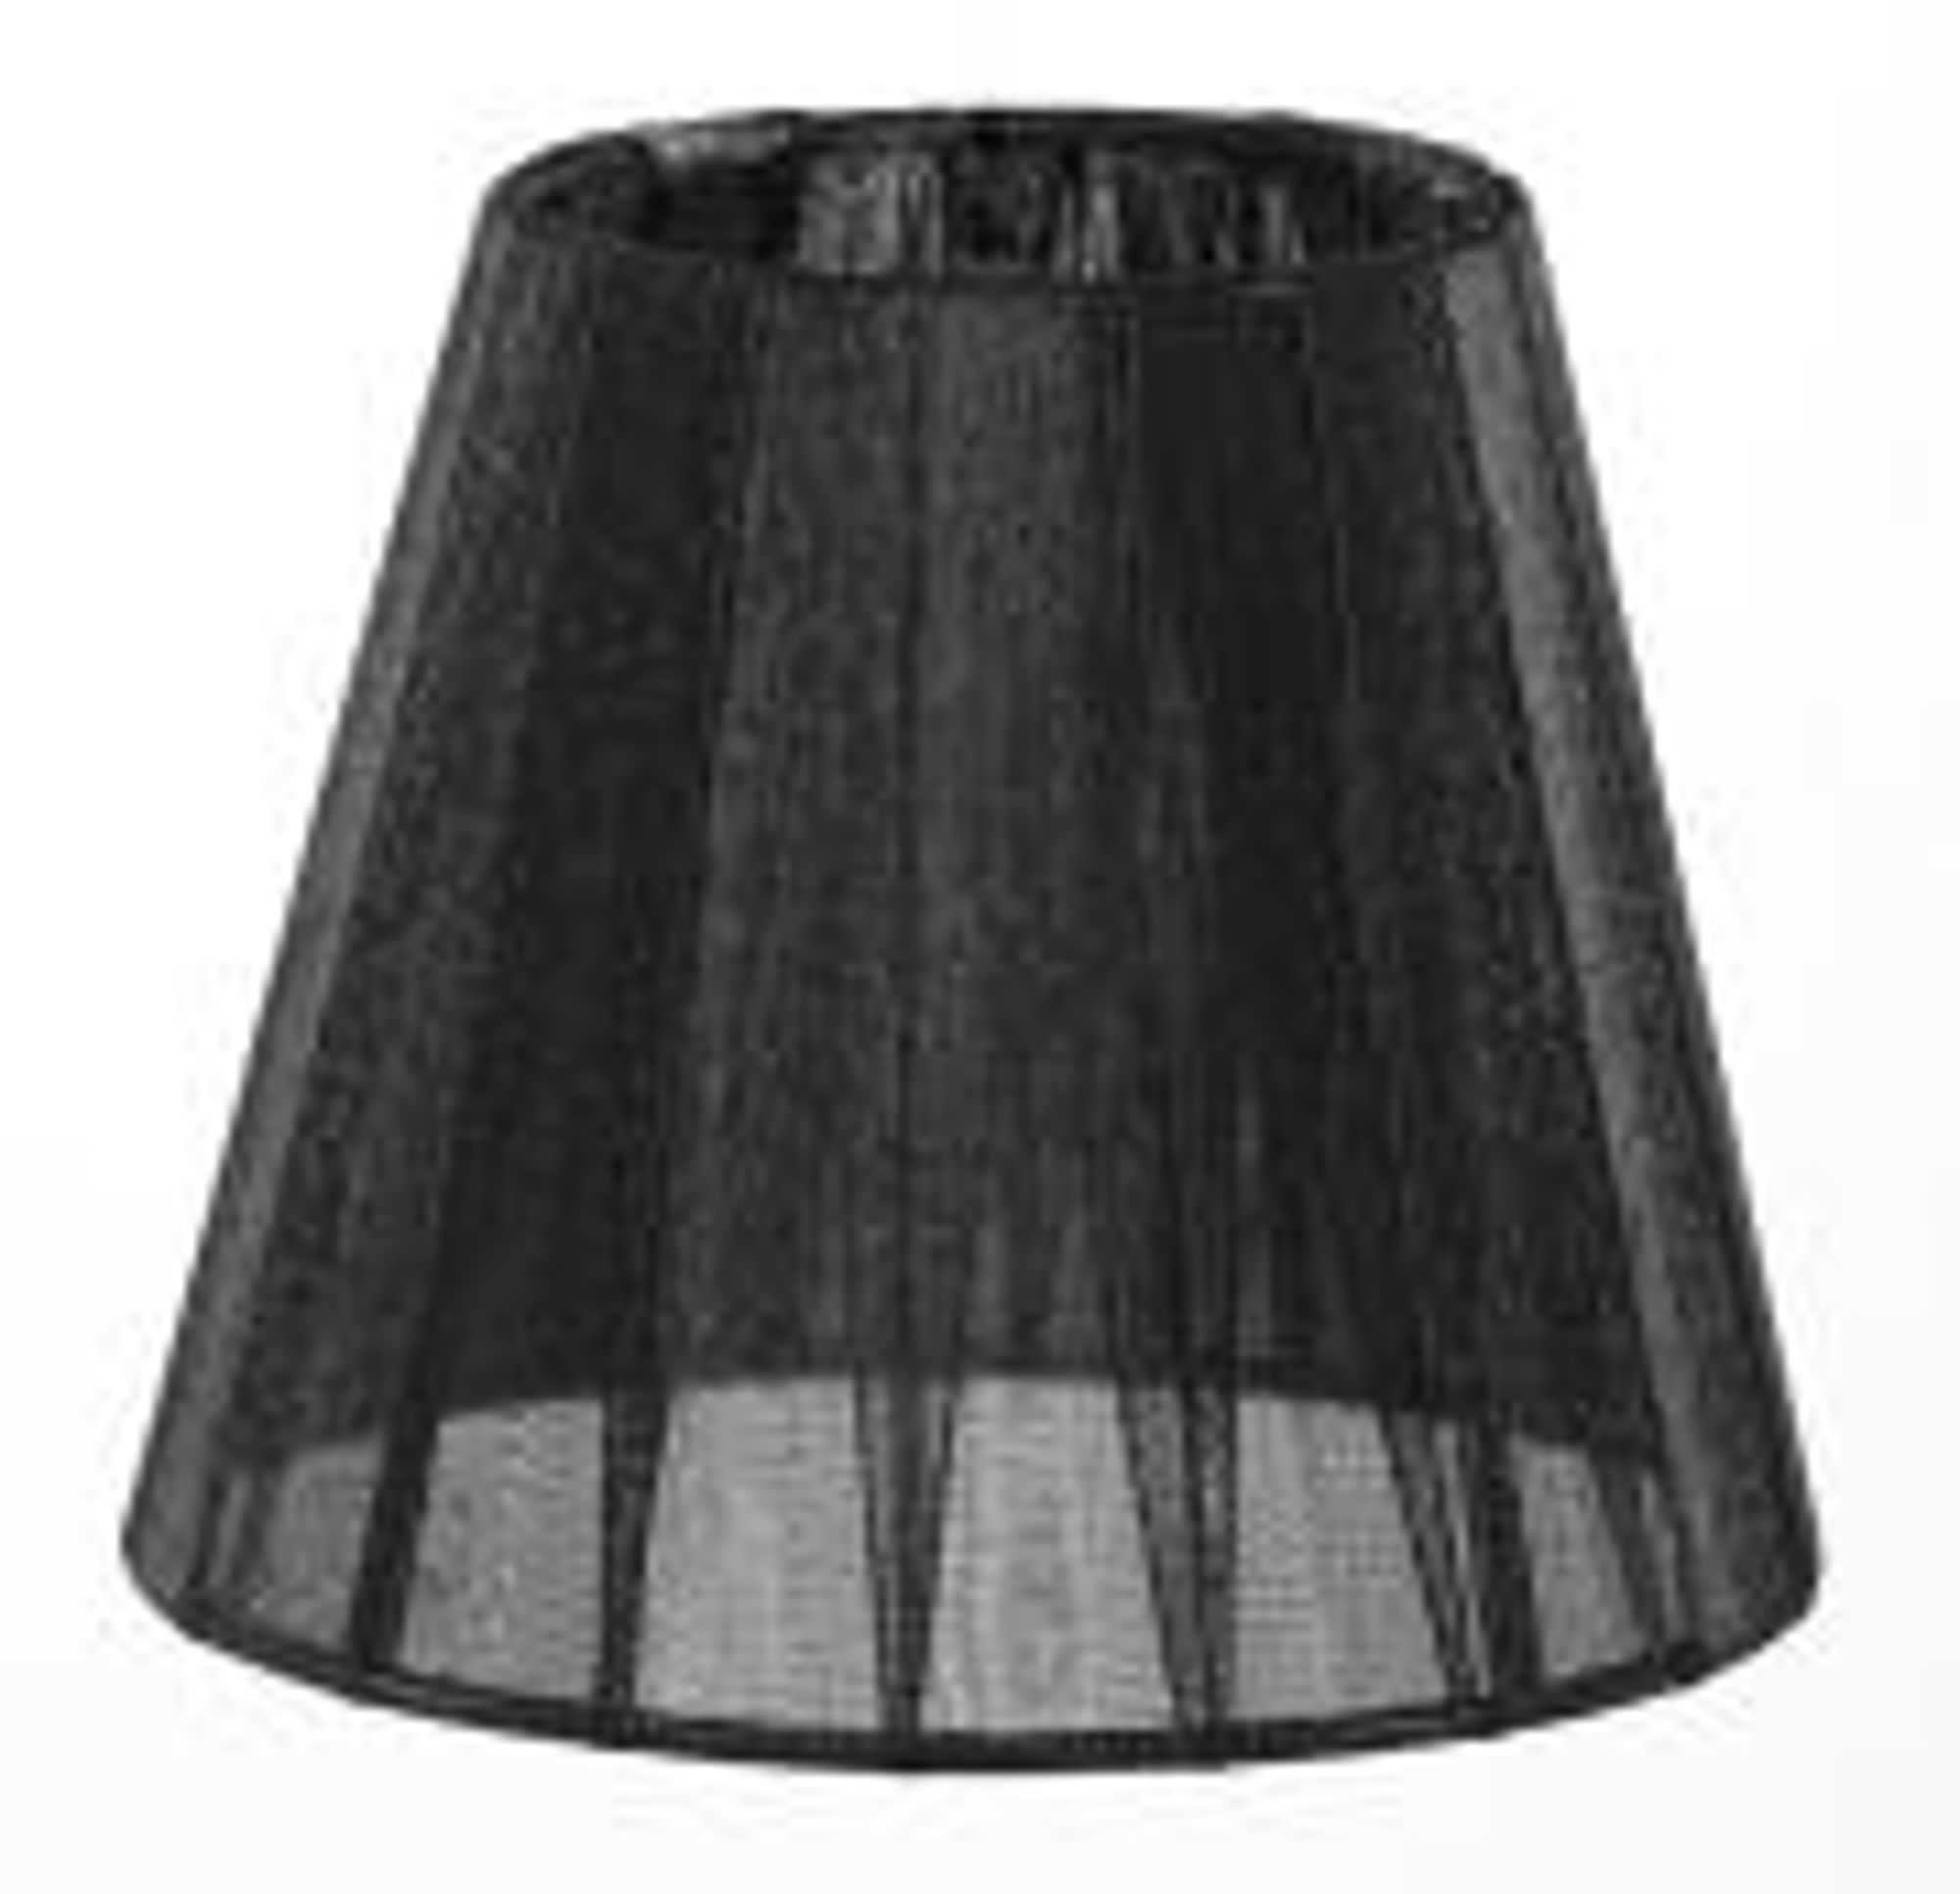 Абажур Maytoni Lampshade LMP-BLACK-130, черный, текстиль - фото 1